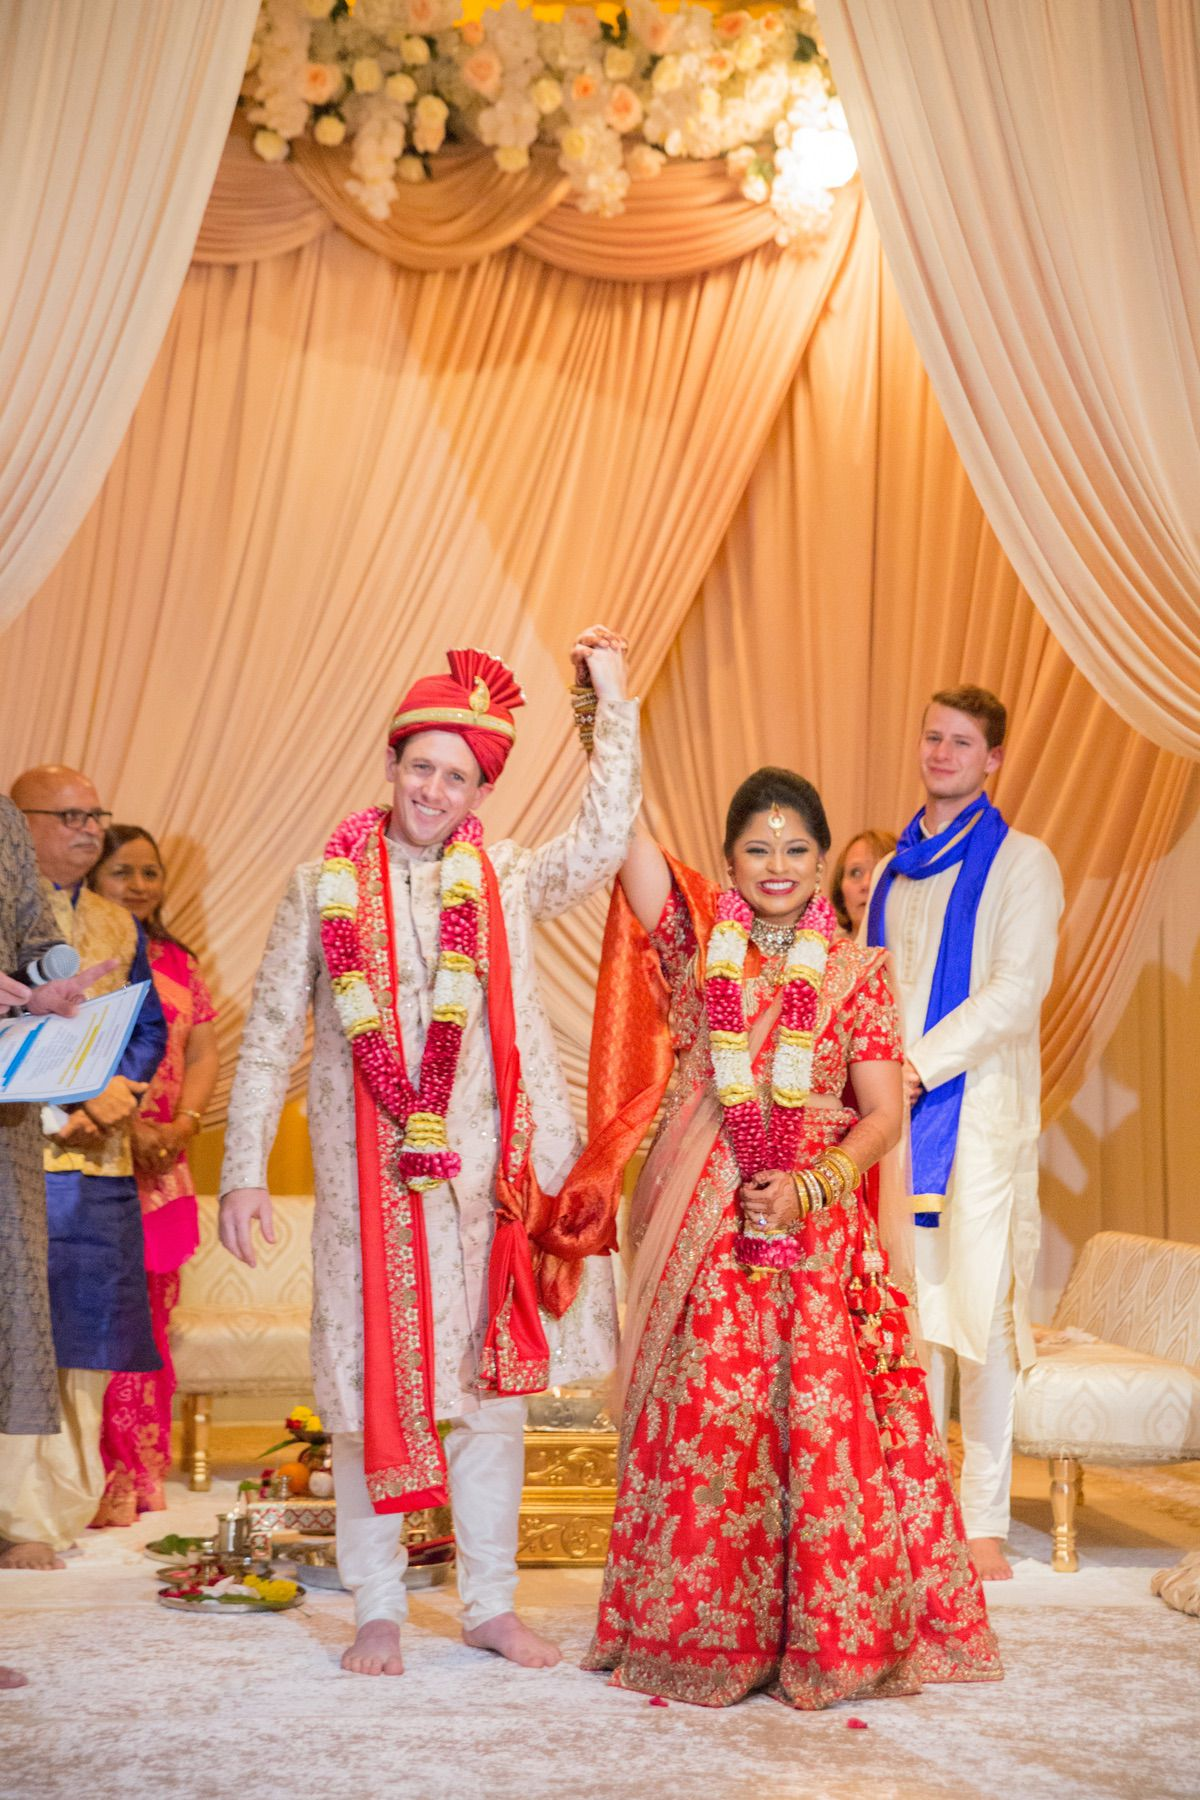 Le Cape Weddings - South Asian Wedding - Trisha and Jordan - Ceremony -130.jpg